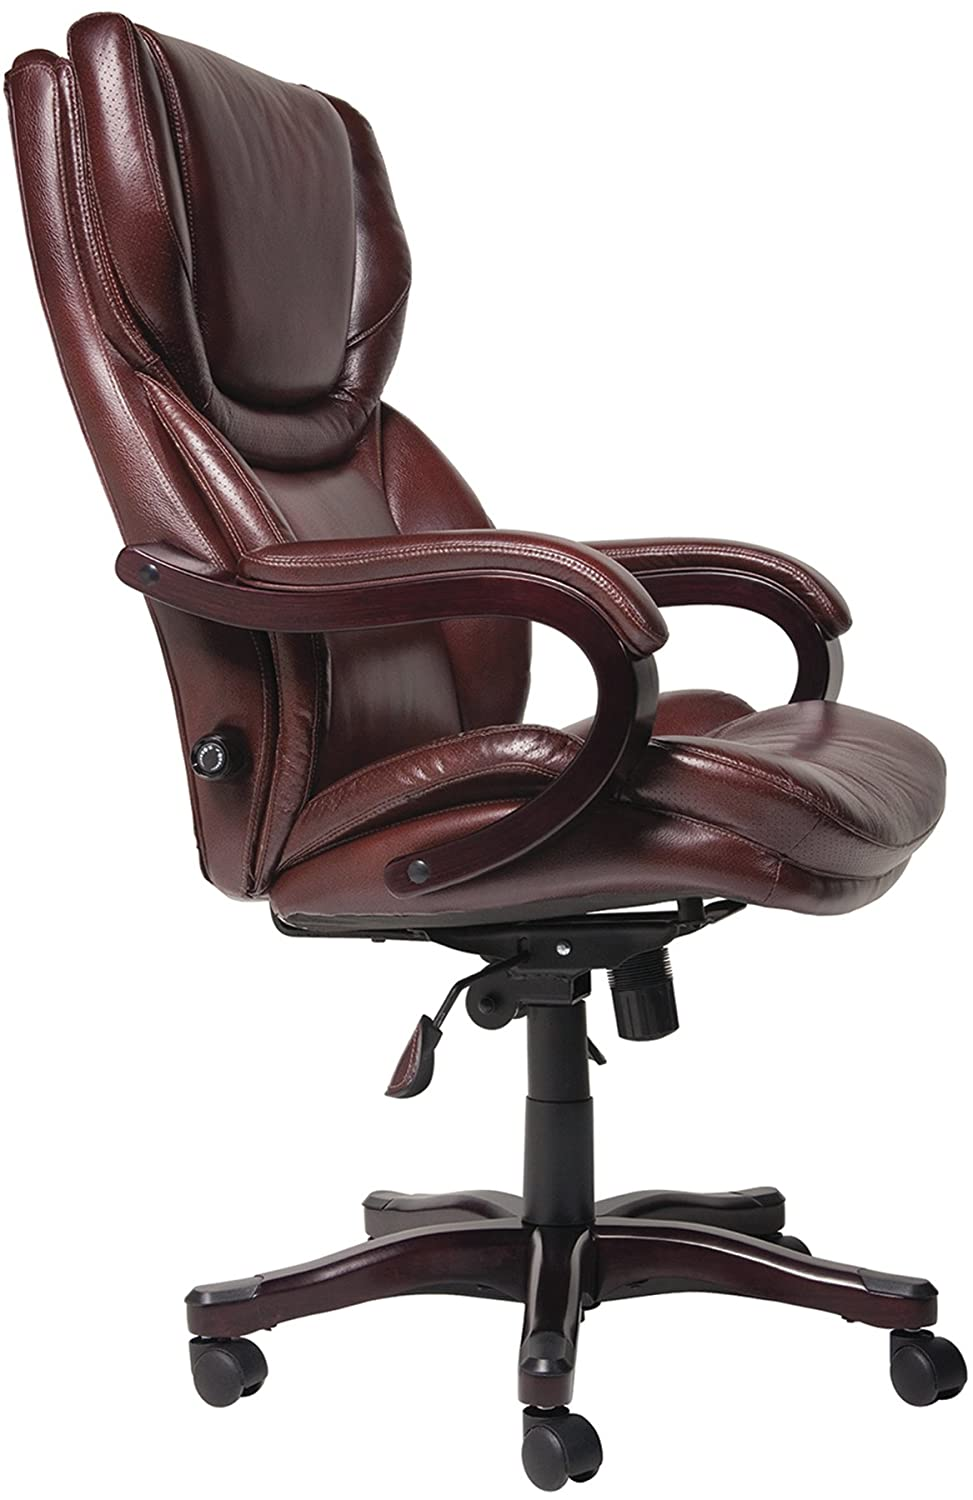 tall colors with walmart memory serta foam office chair com big ip multiple commercial